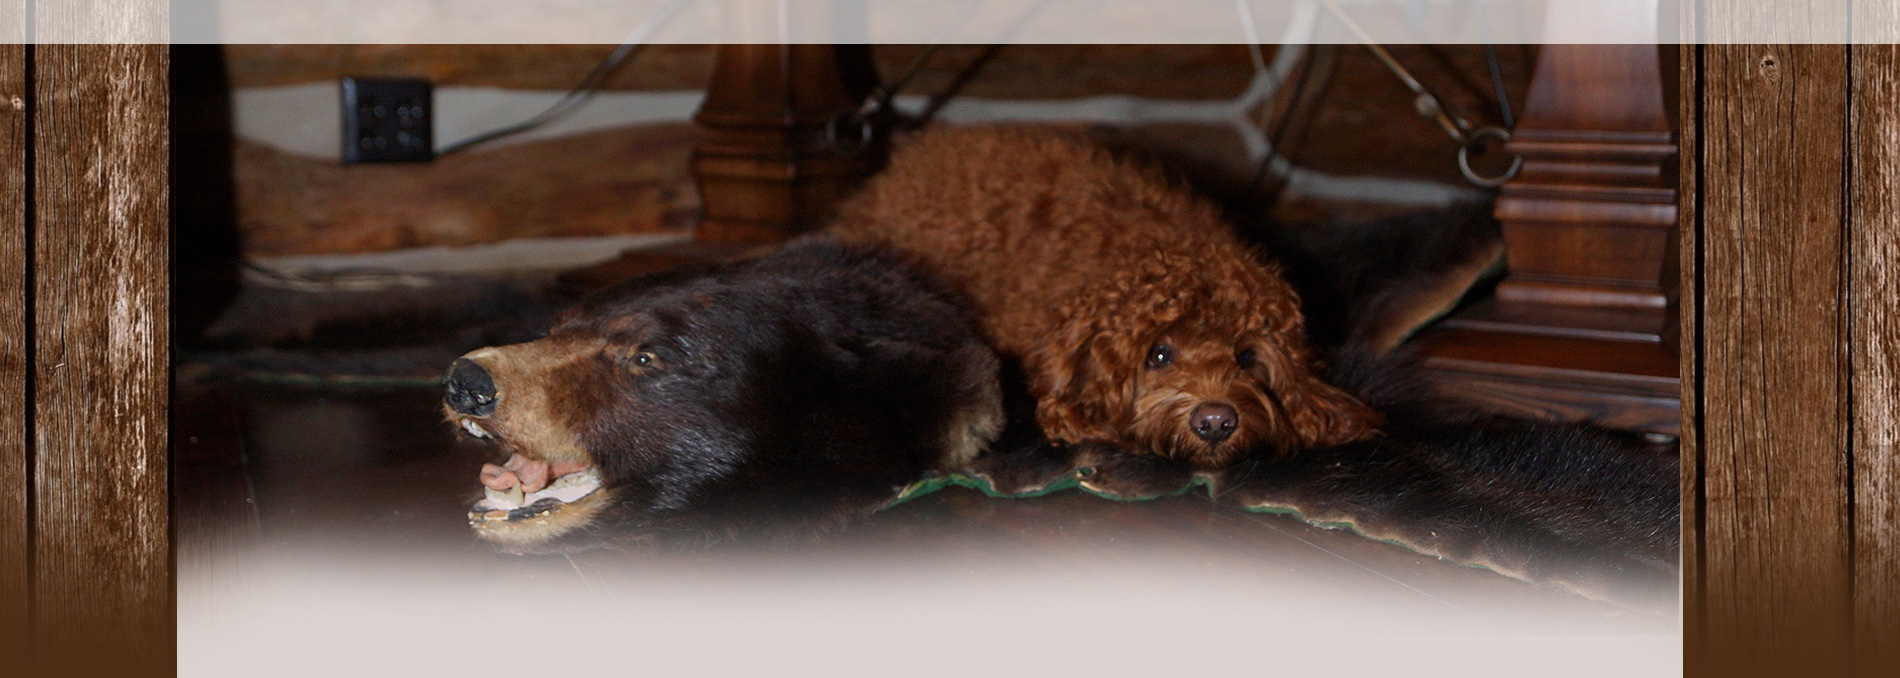 Waukesha Labradoodle Breeder Puppies for Sale | New Berlin